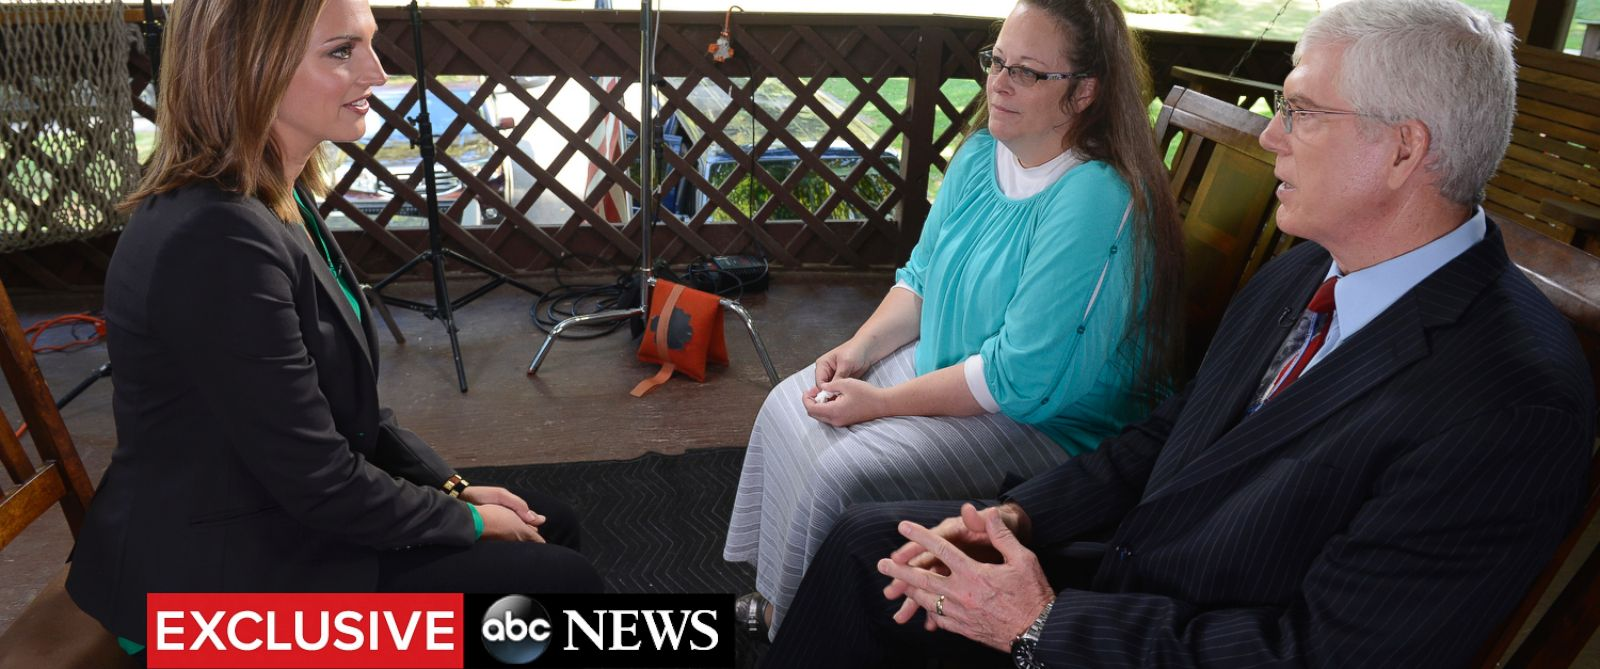 PHOTO: ABC News Paula Faris sat down for an exclusive interview with Kentucky County Clerk Kim Davis in Morehead, Kentucky, on Sept. 21, 2015.